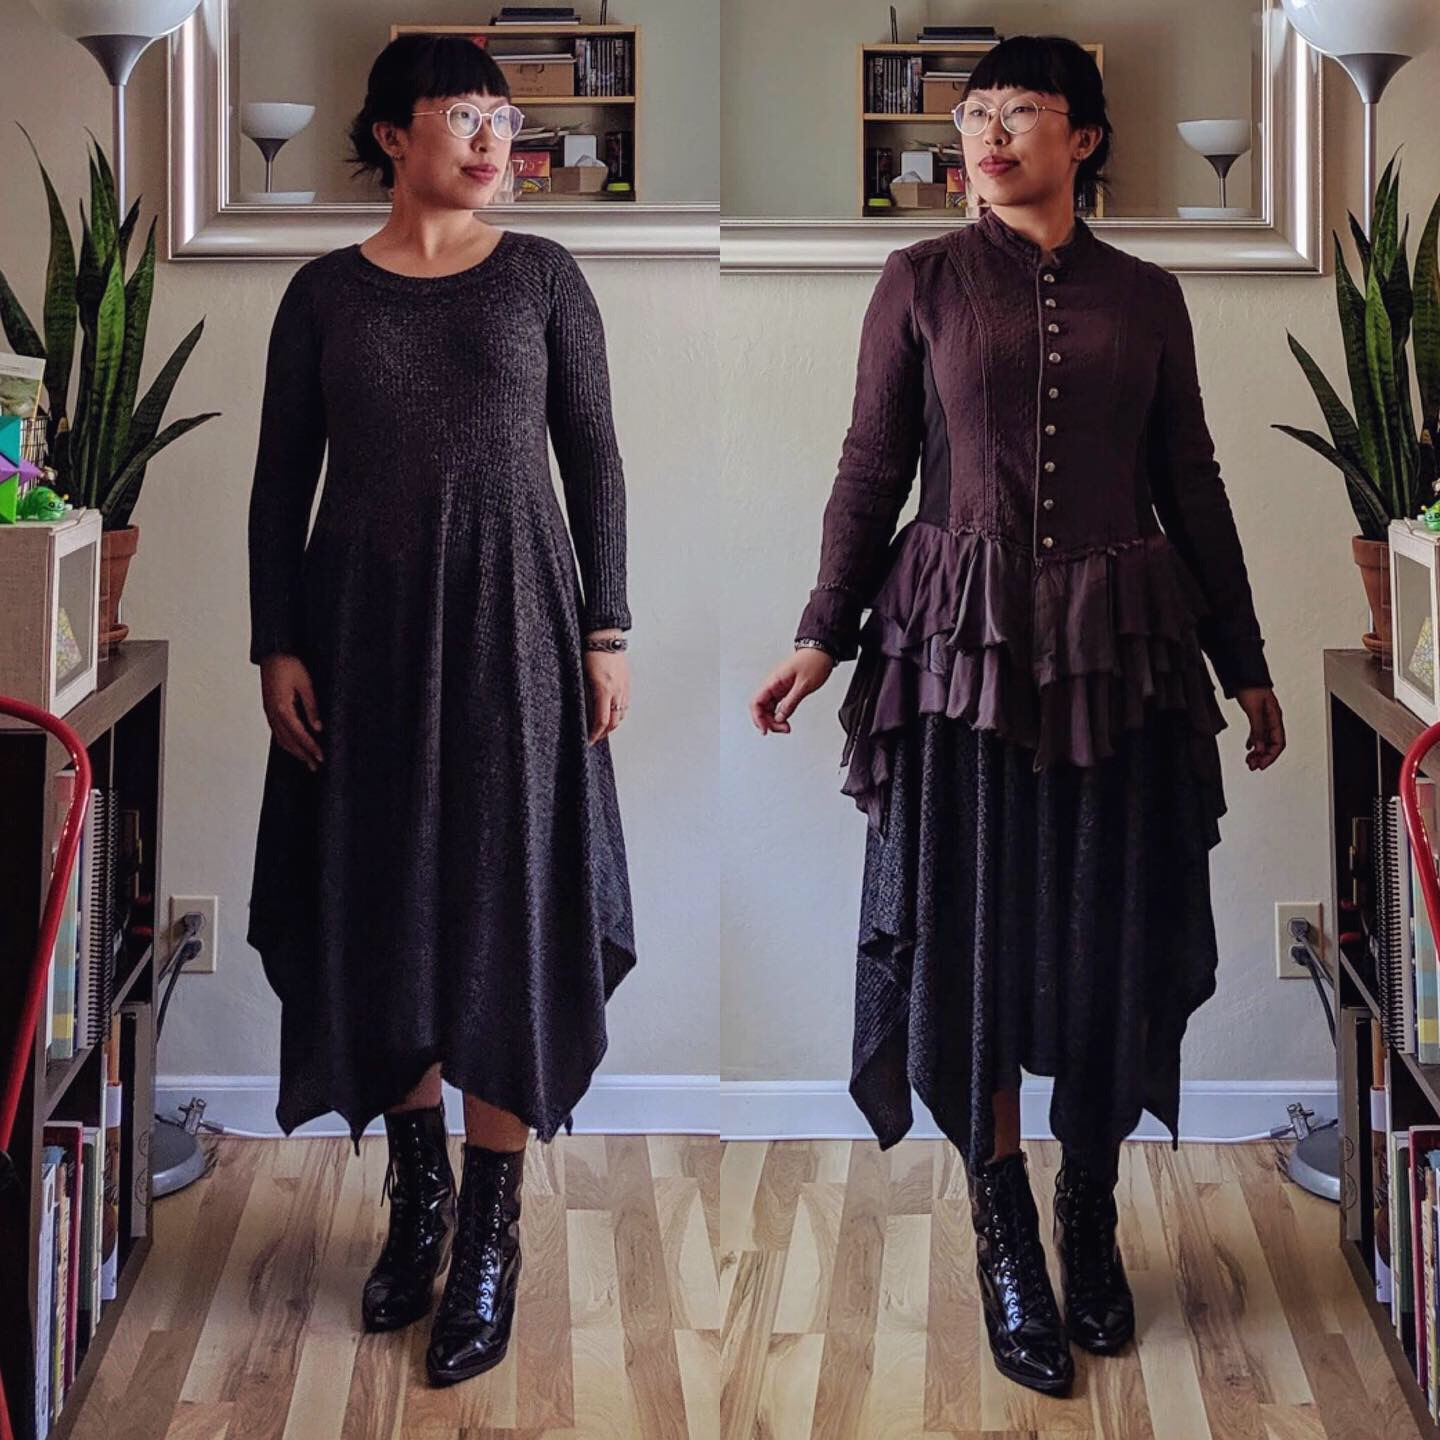 Guide To Creating Wearable Witchy Outfits M Gets Dressed